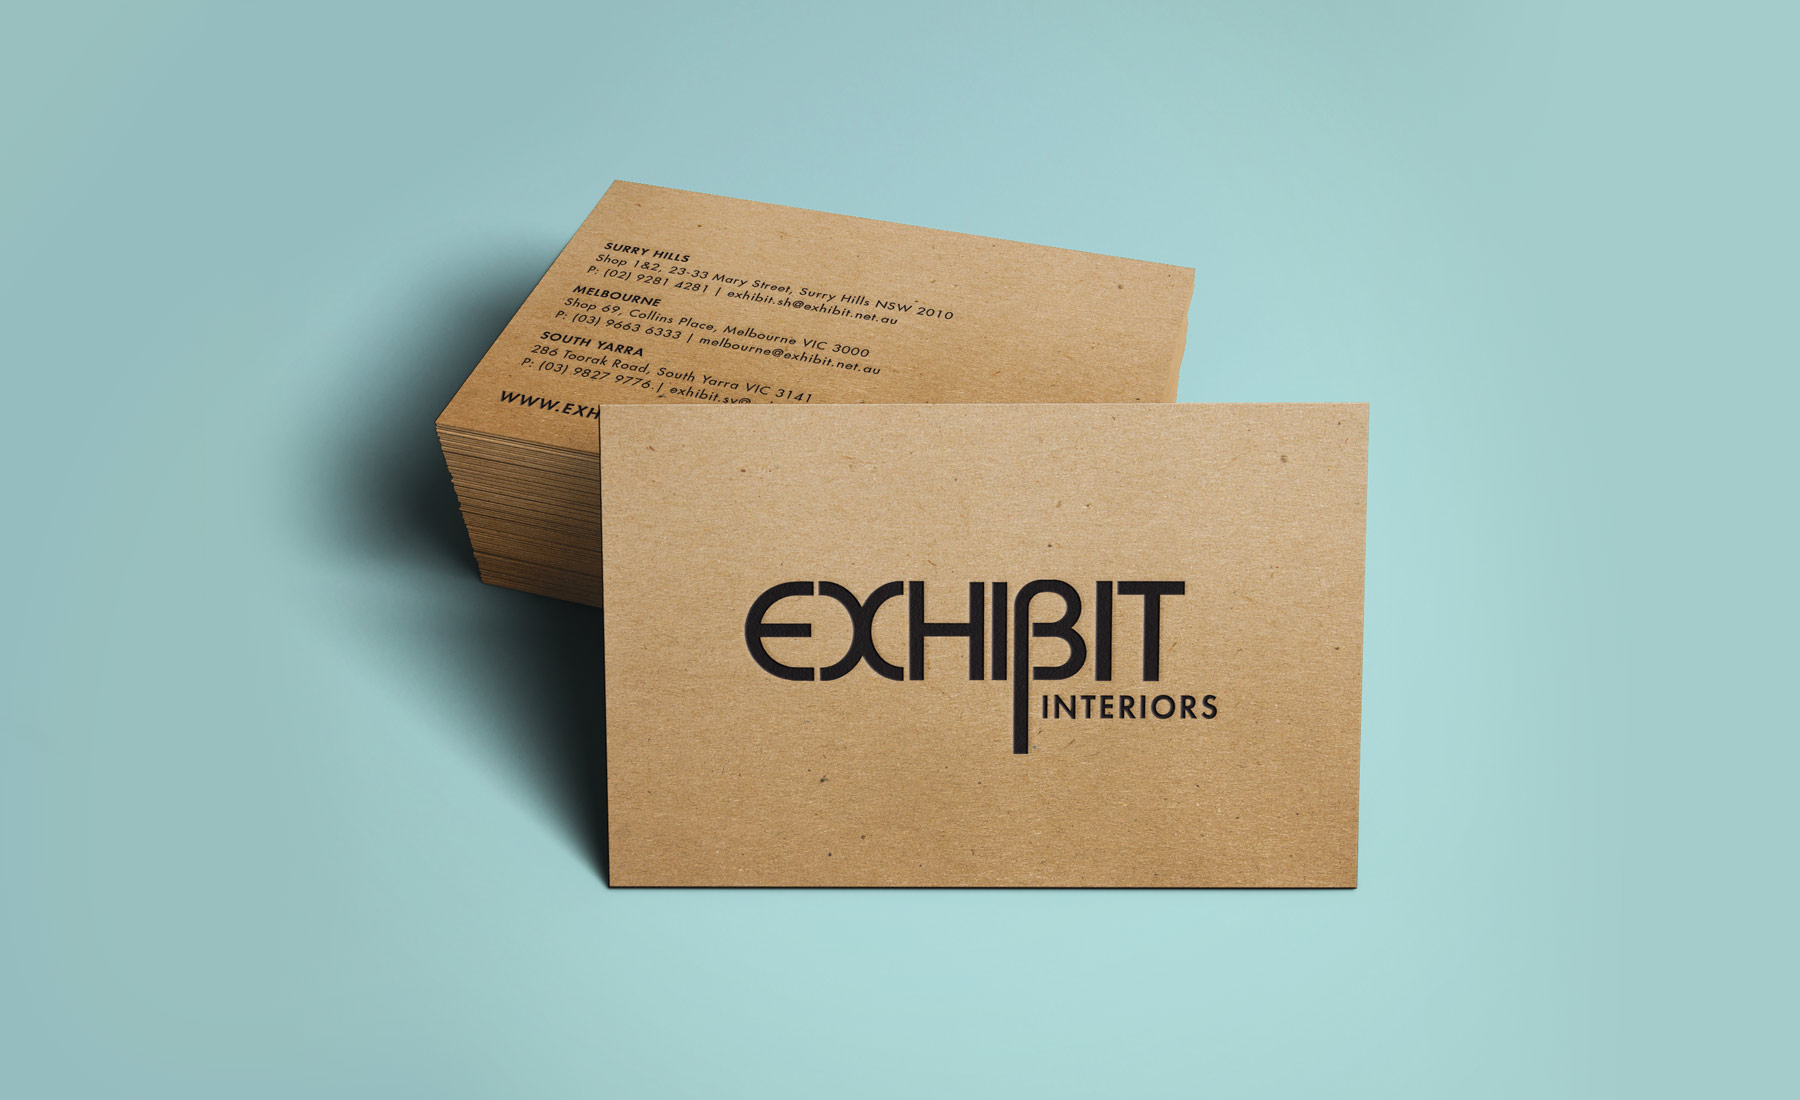 Exhibit interiors bvn creative furniture and homewares retailer exhibit interiors required a simple business card with texture we selected a brown recycled kraft paper that looks reheart Image collections